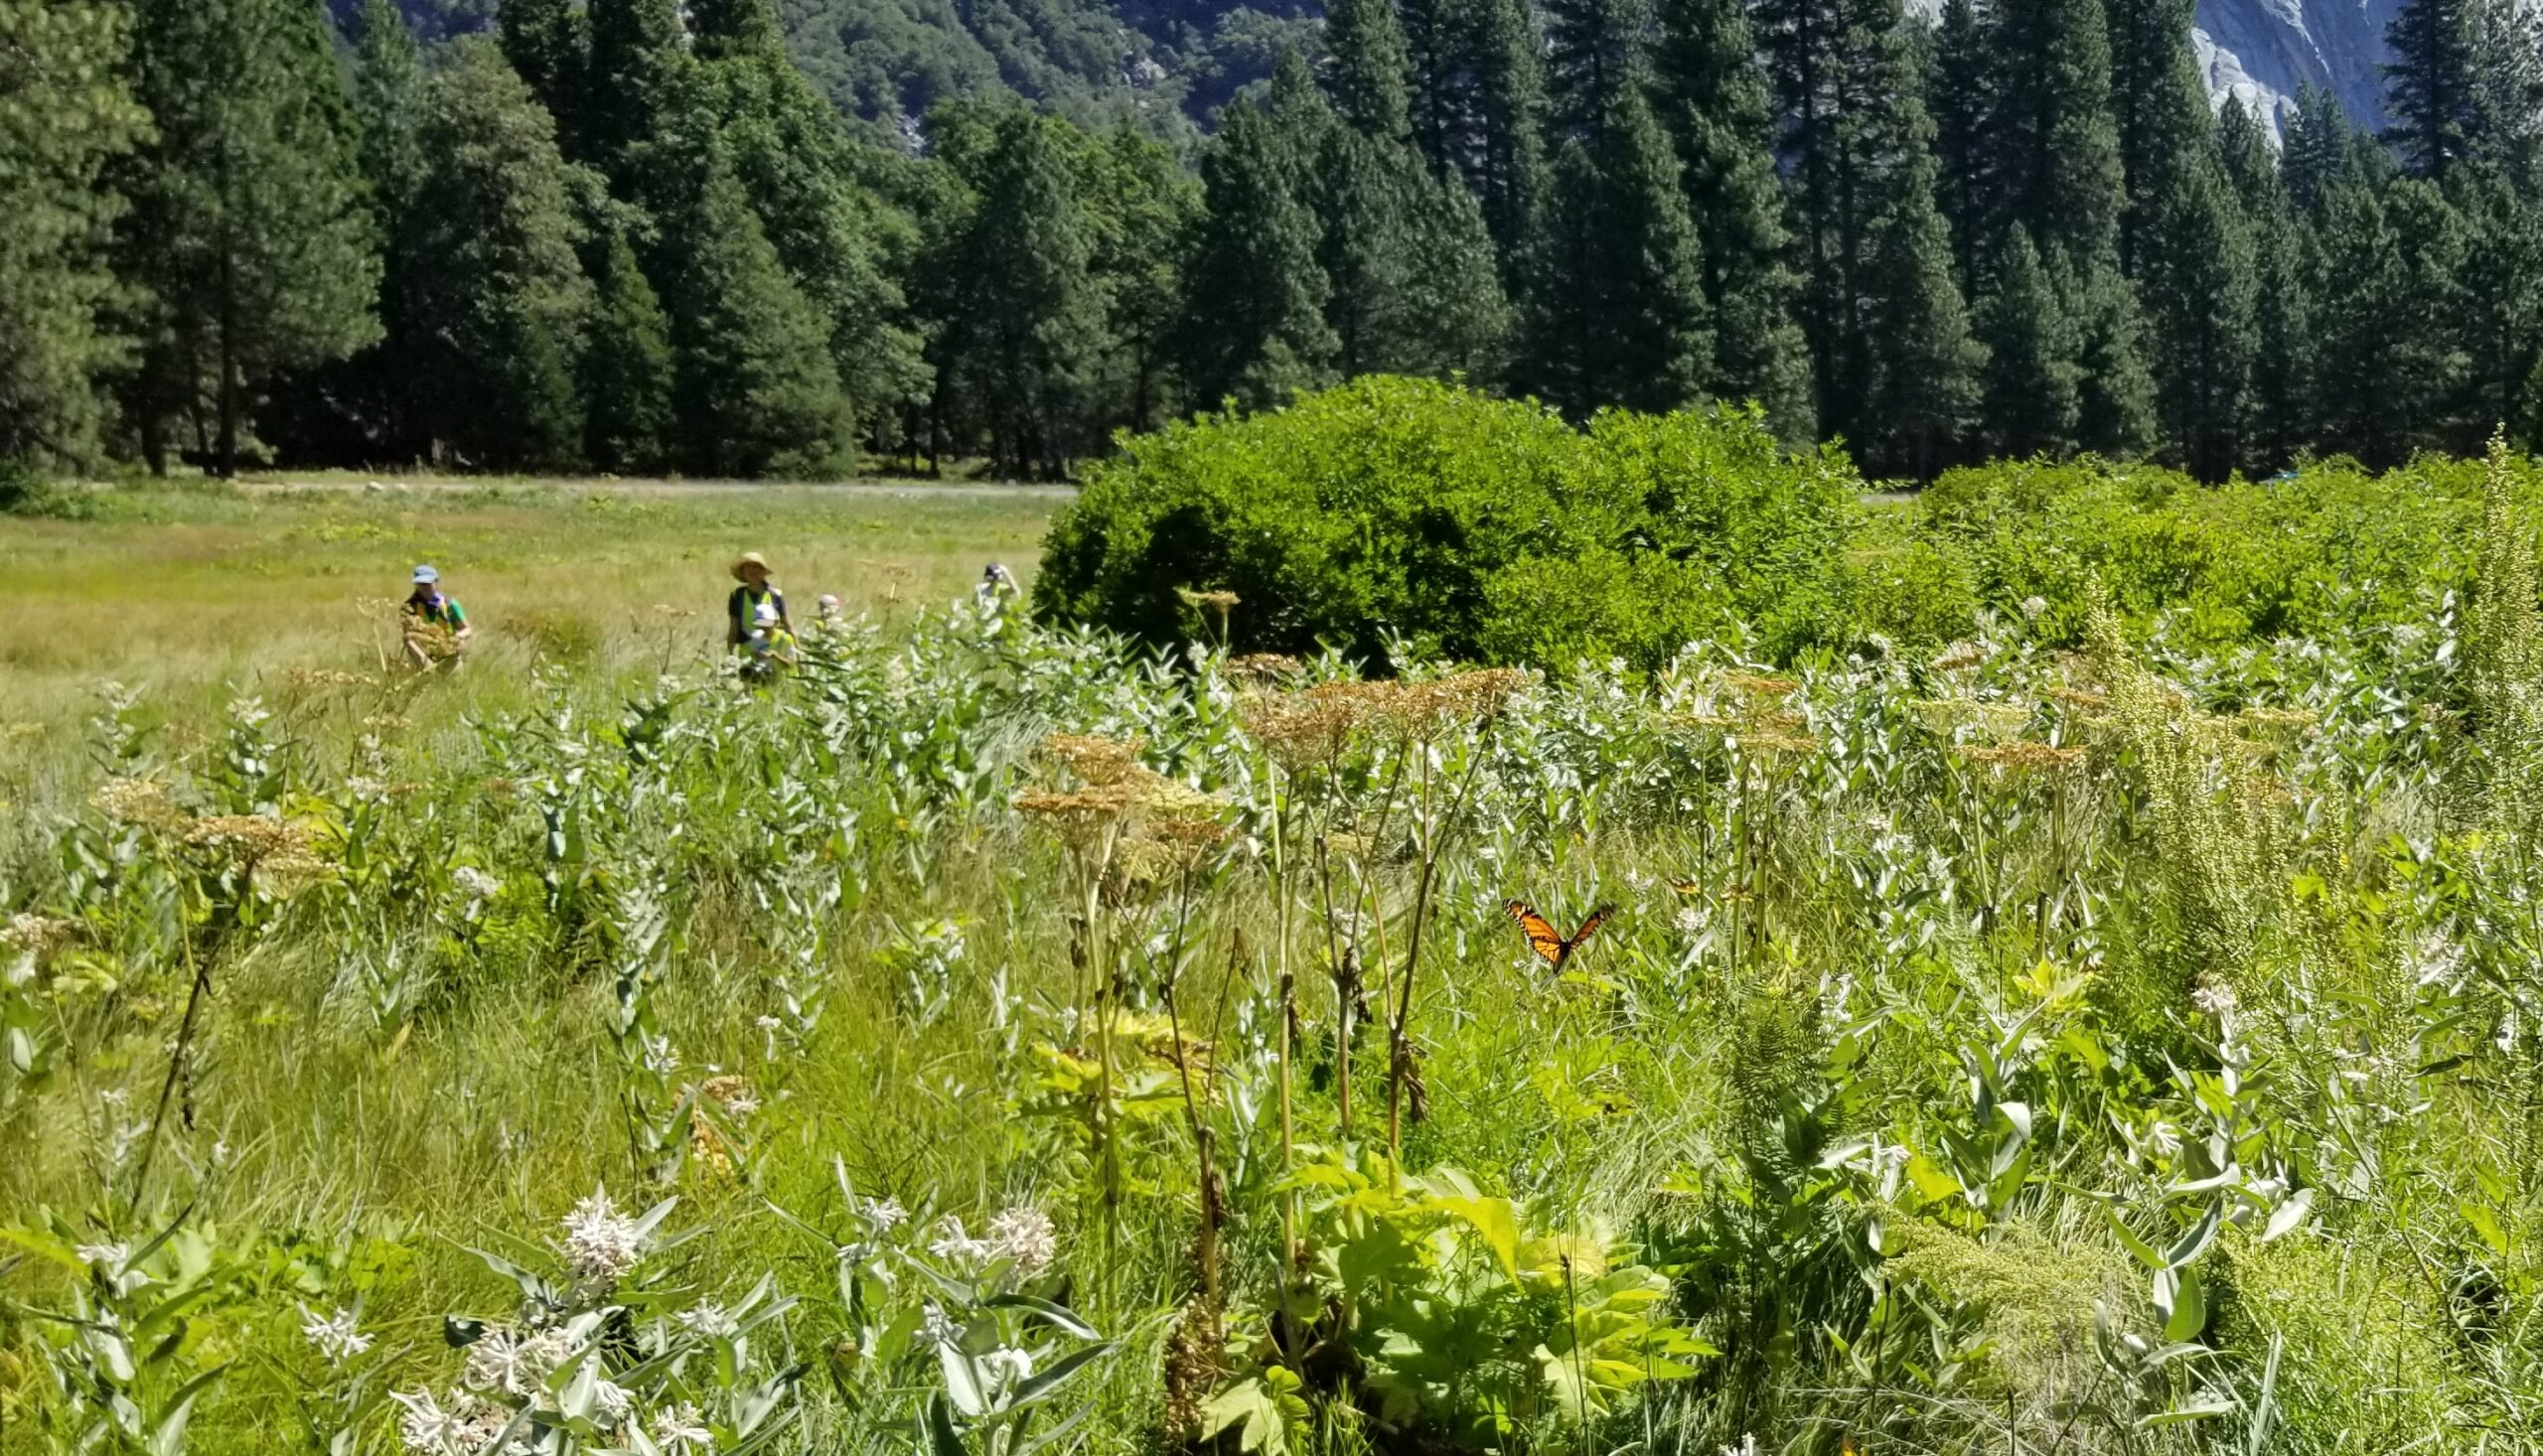 A landscape photo taking in Yosemite Valley showing a monarch butterfly among meadow plants in the foreground, with two volunteers from a school group in the background. Photo: NPS, August 2019.